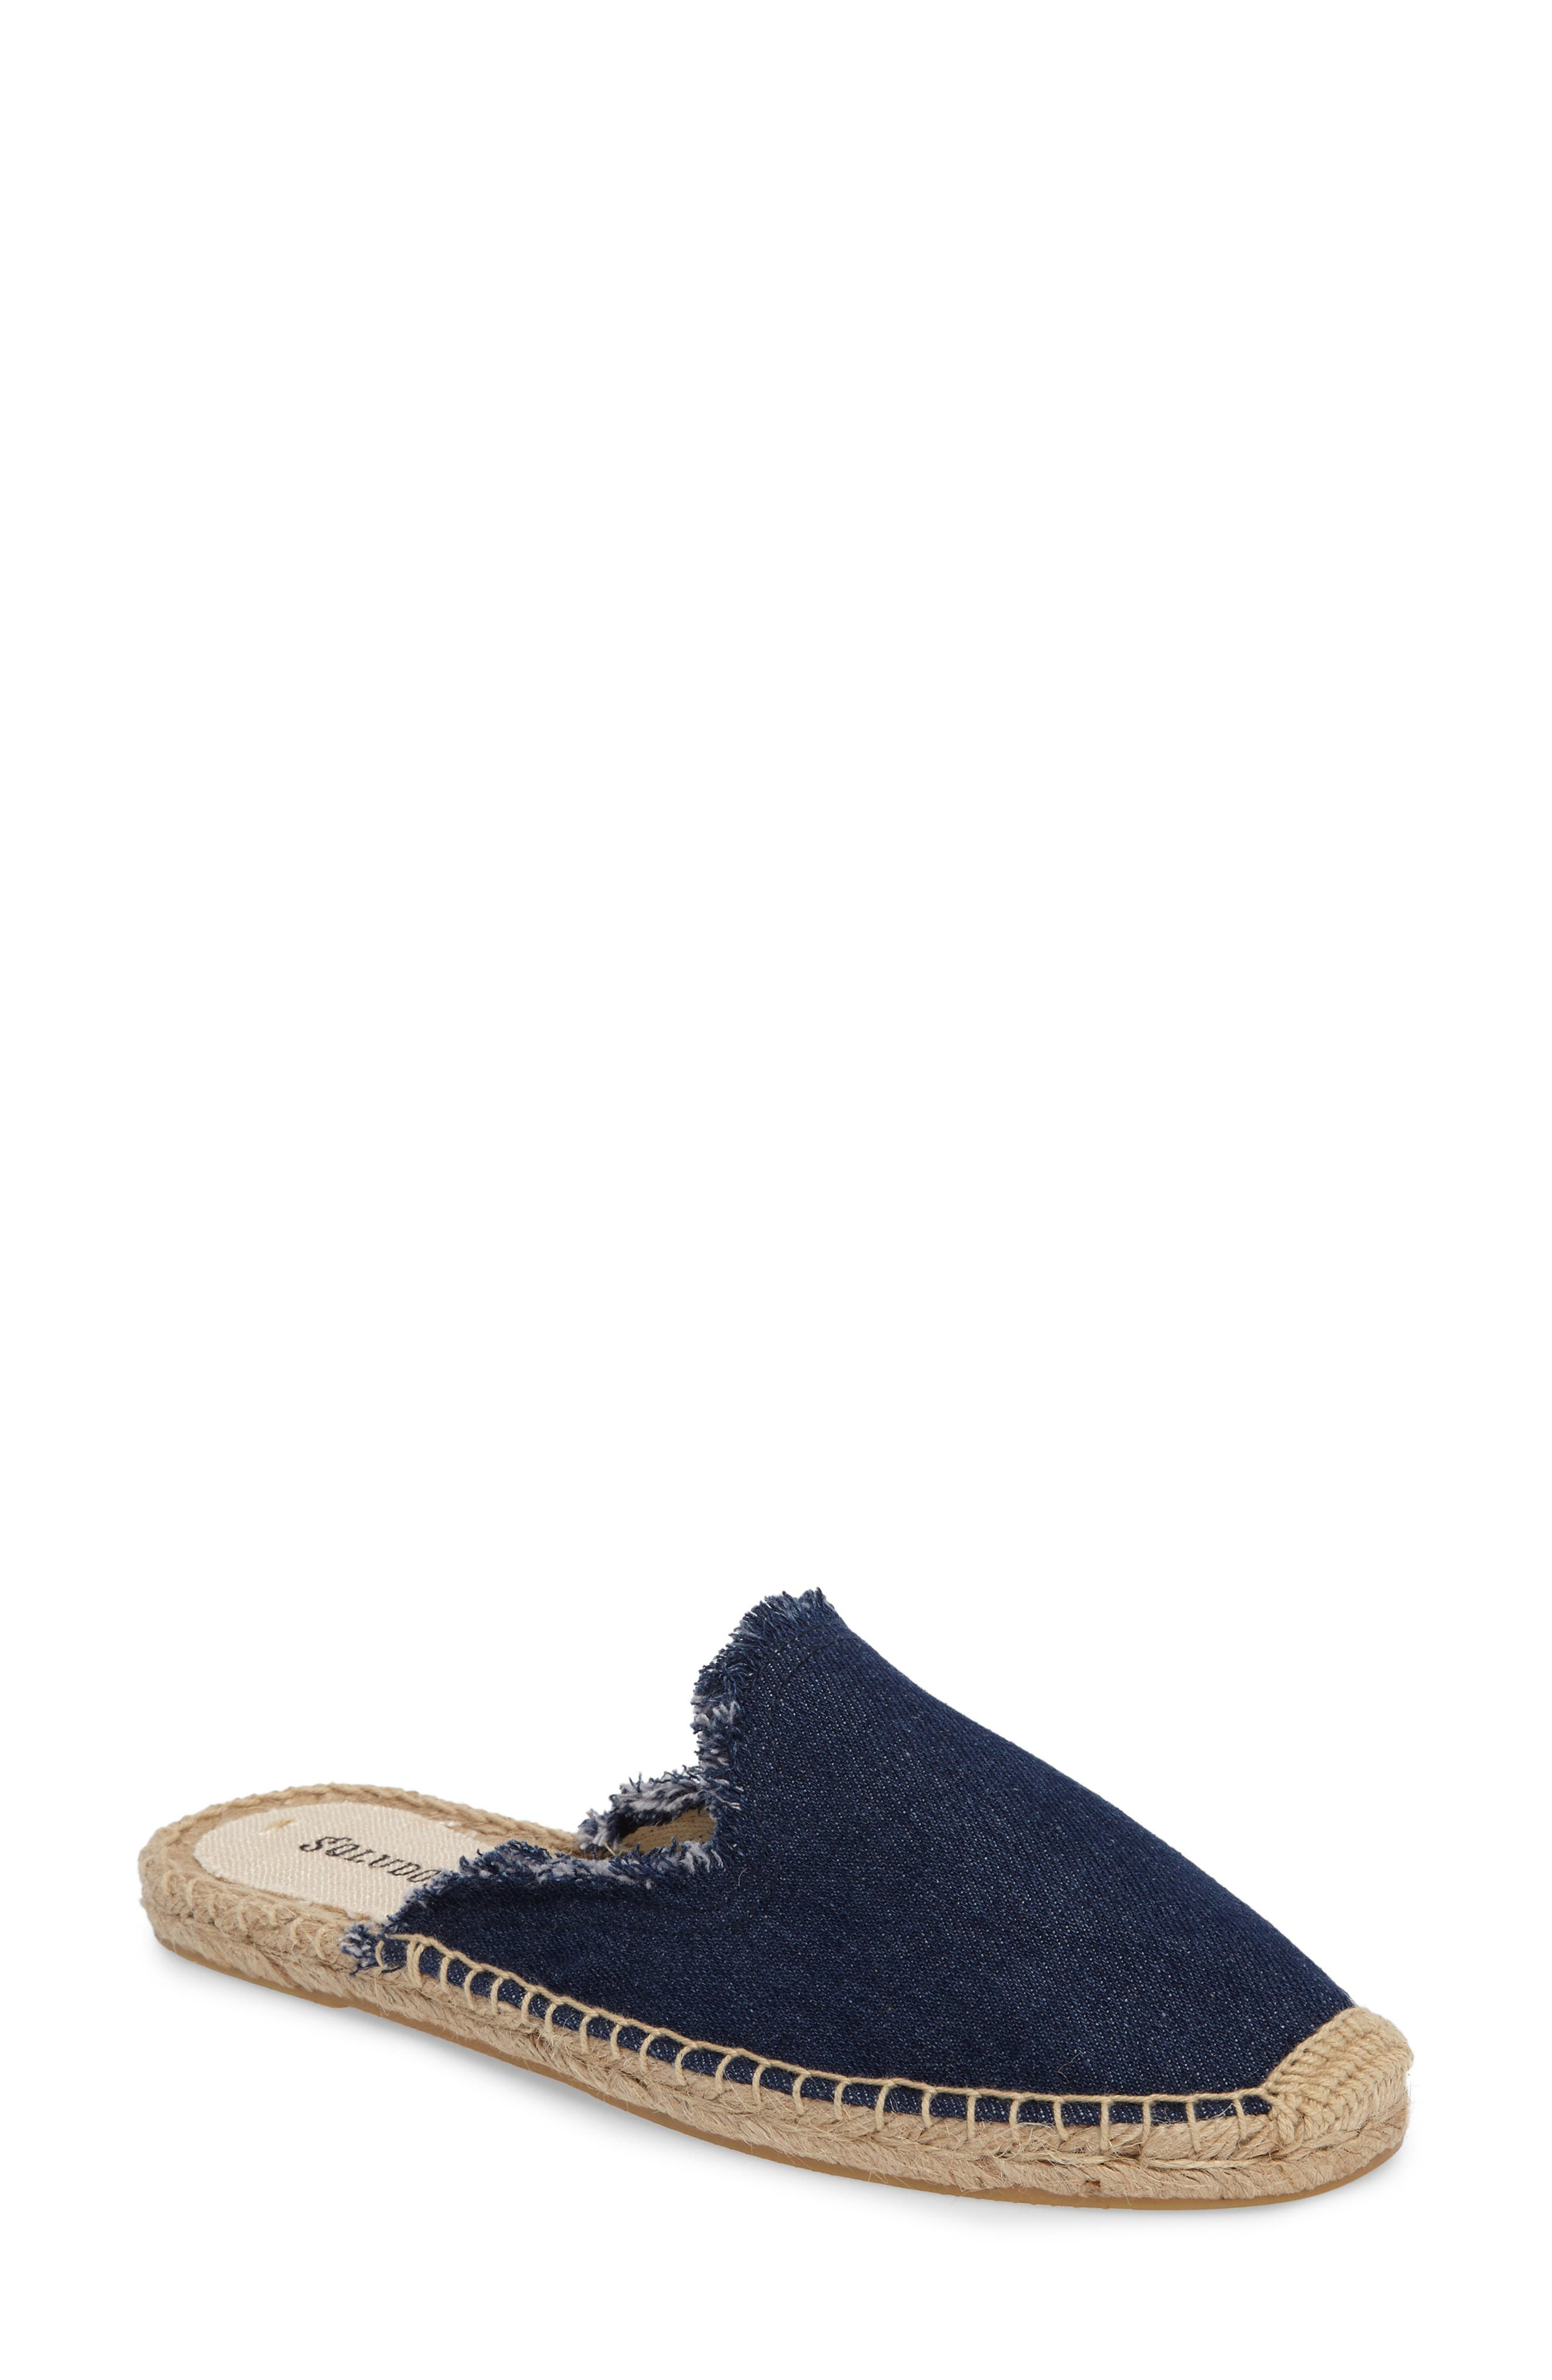 Soludos Frayed Loafer Mule (Women)